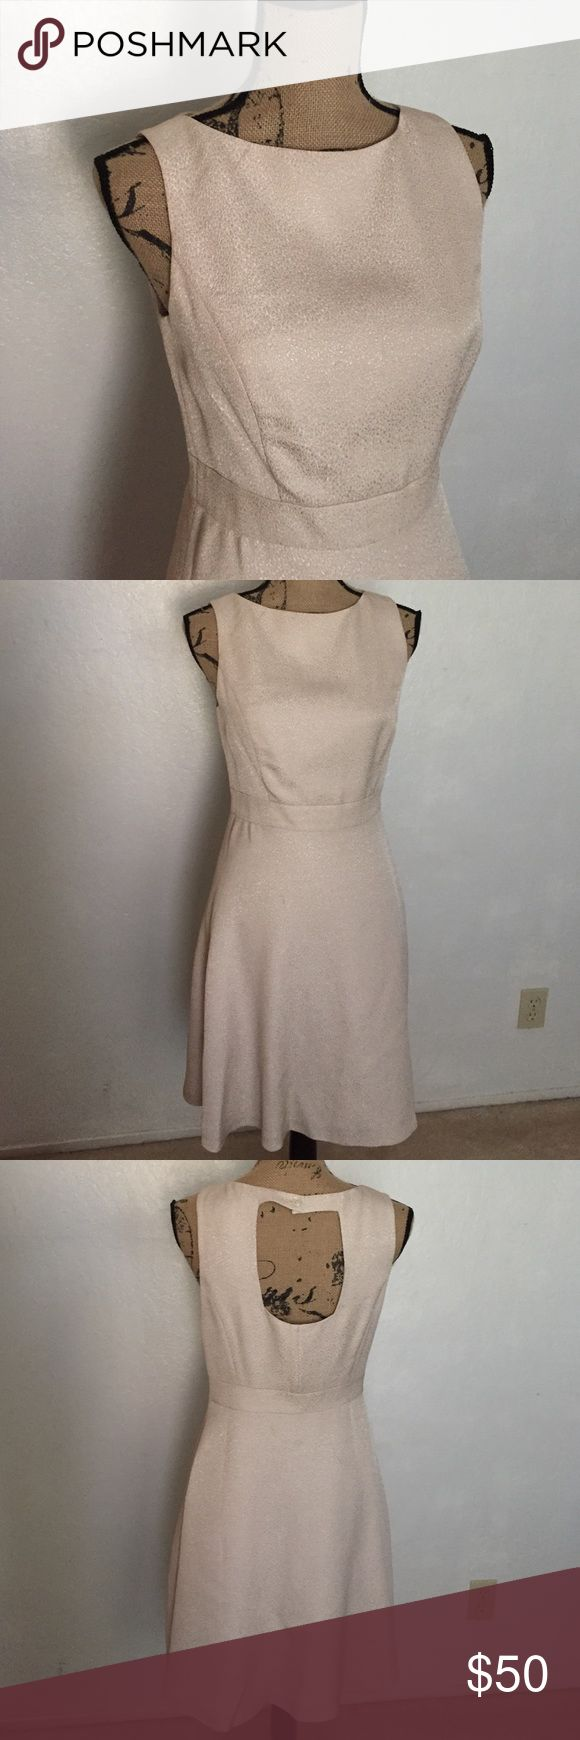 What color is this dress image